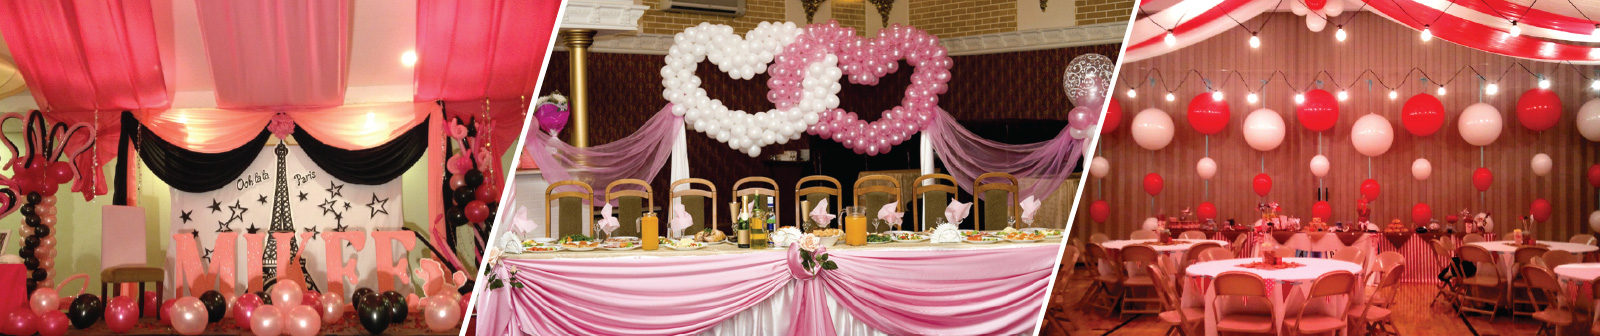 Balloon Decorators in Bangalore